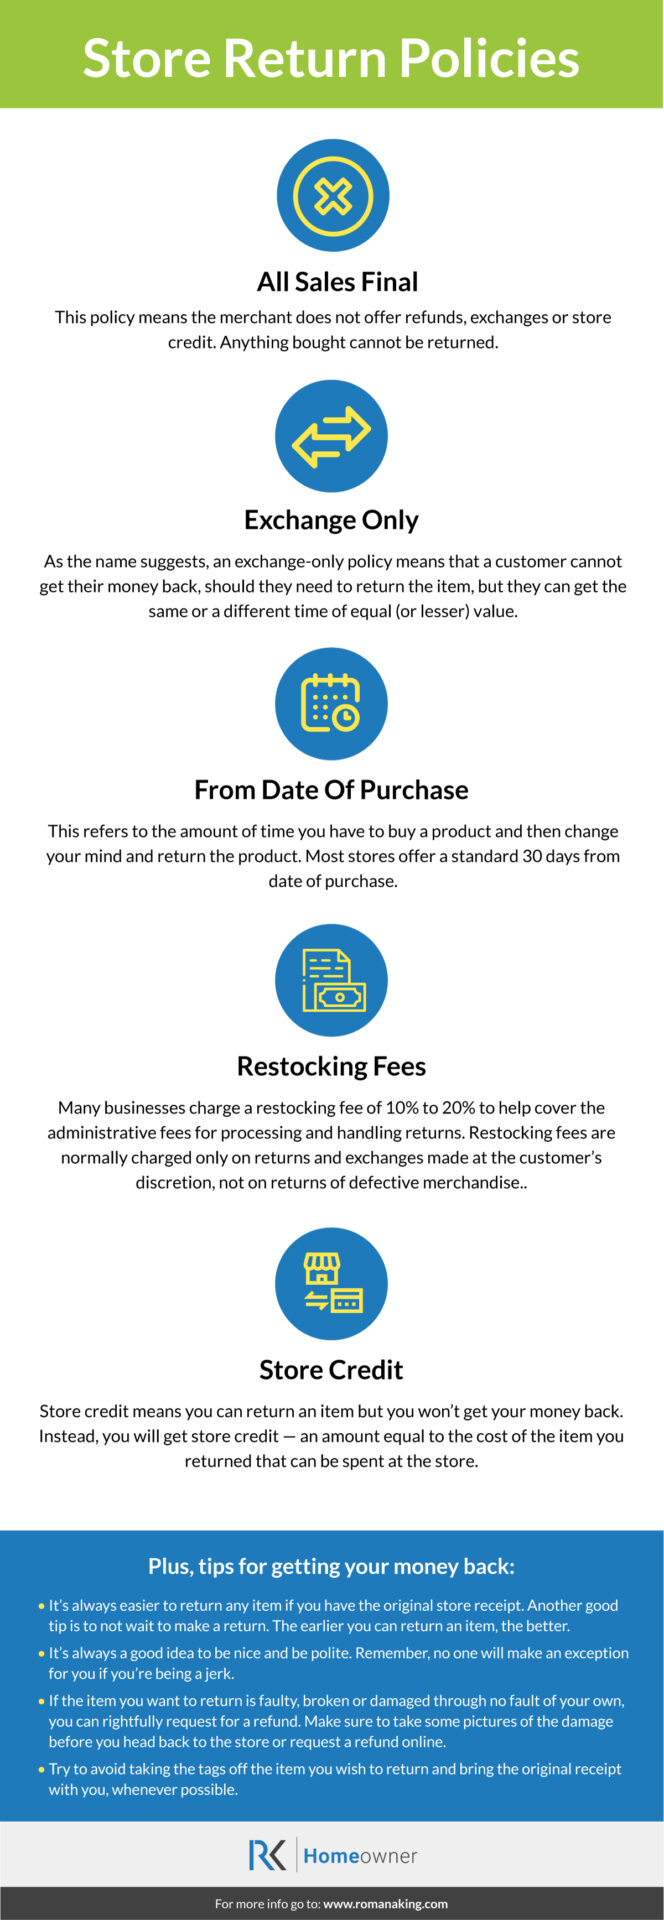 Infographic store return policy rules plus tips to get money back